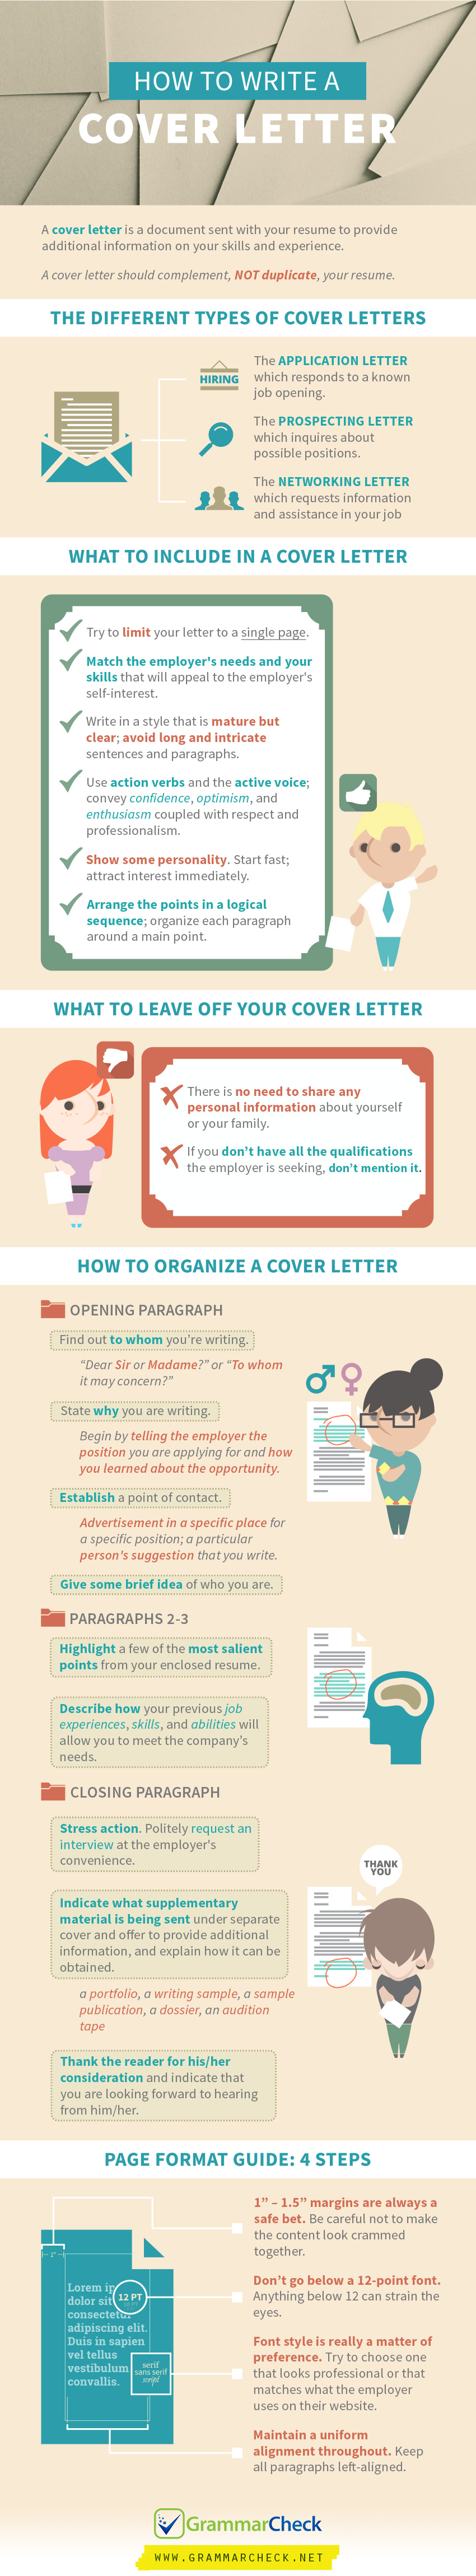 How to write a cover letter step by step infographic for Do recruiters read cover letters